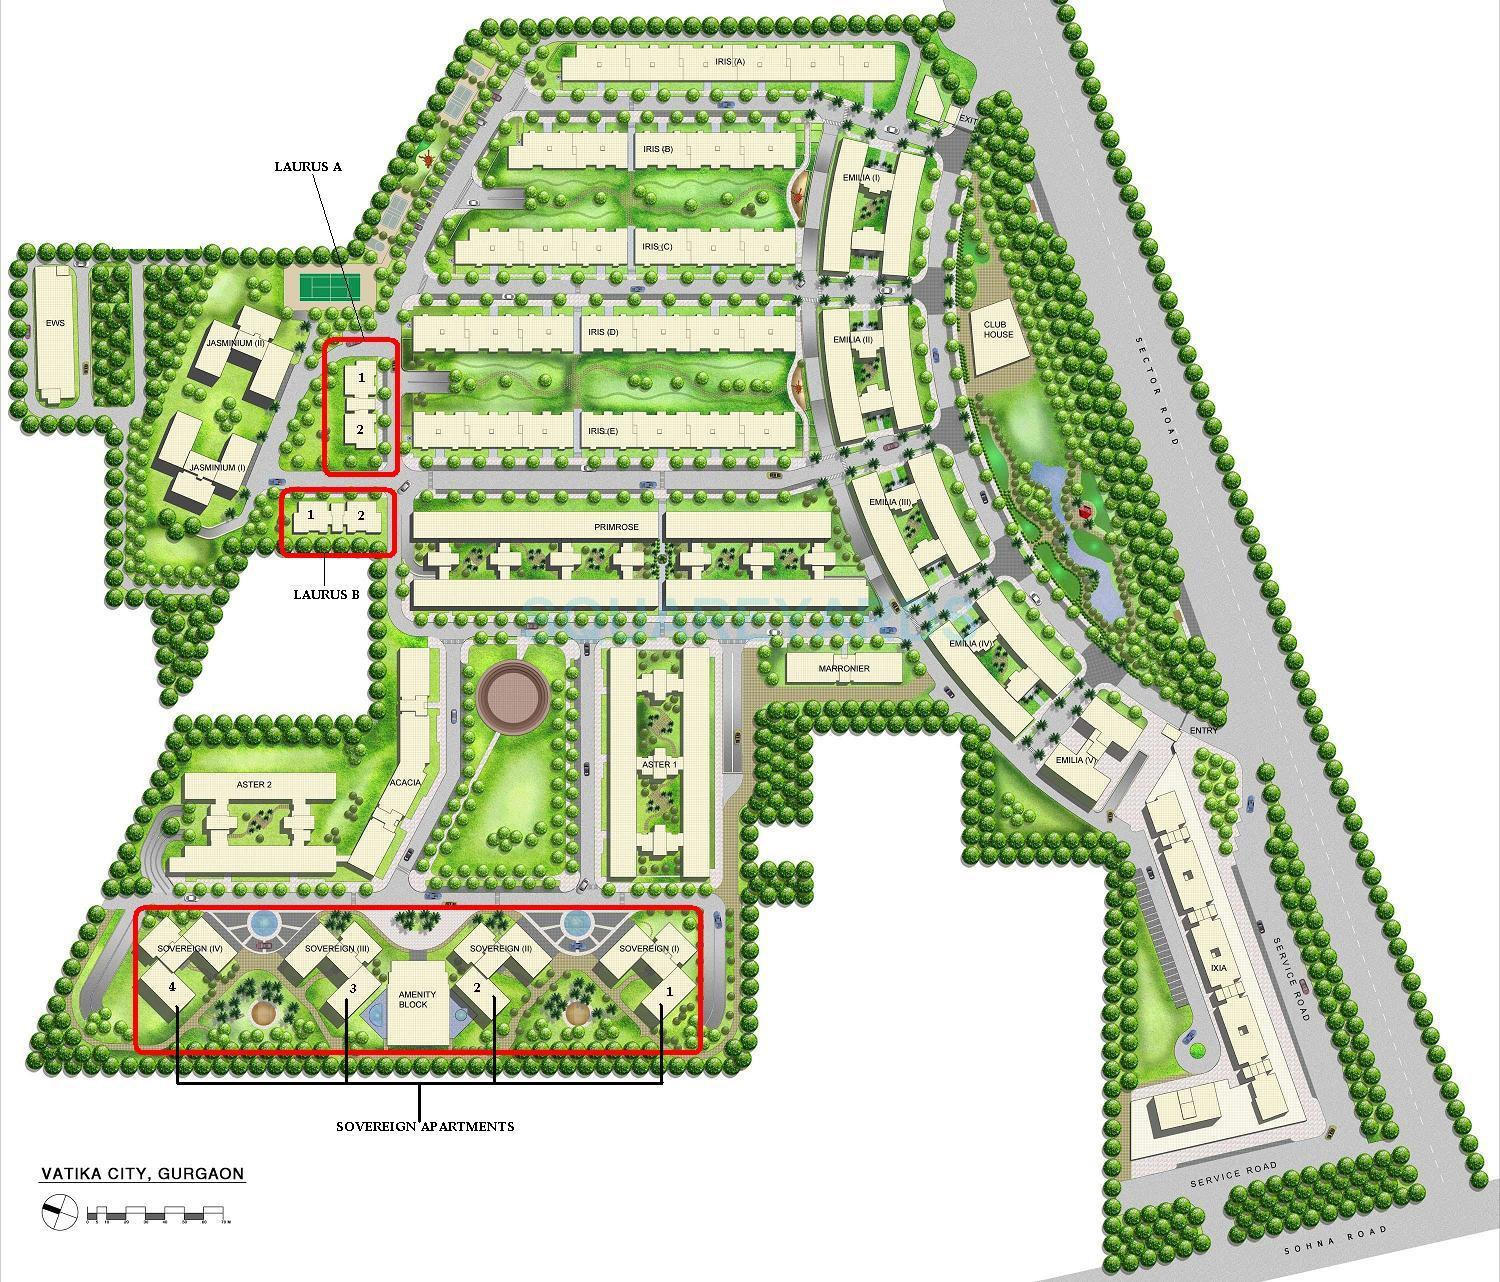 vatika city sovergian master plan image1